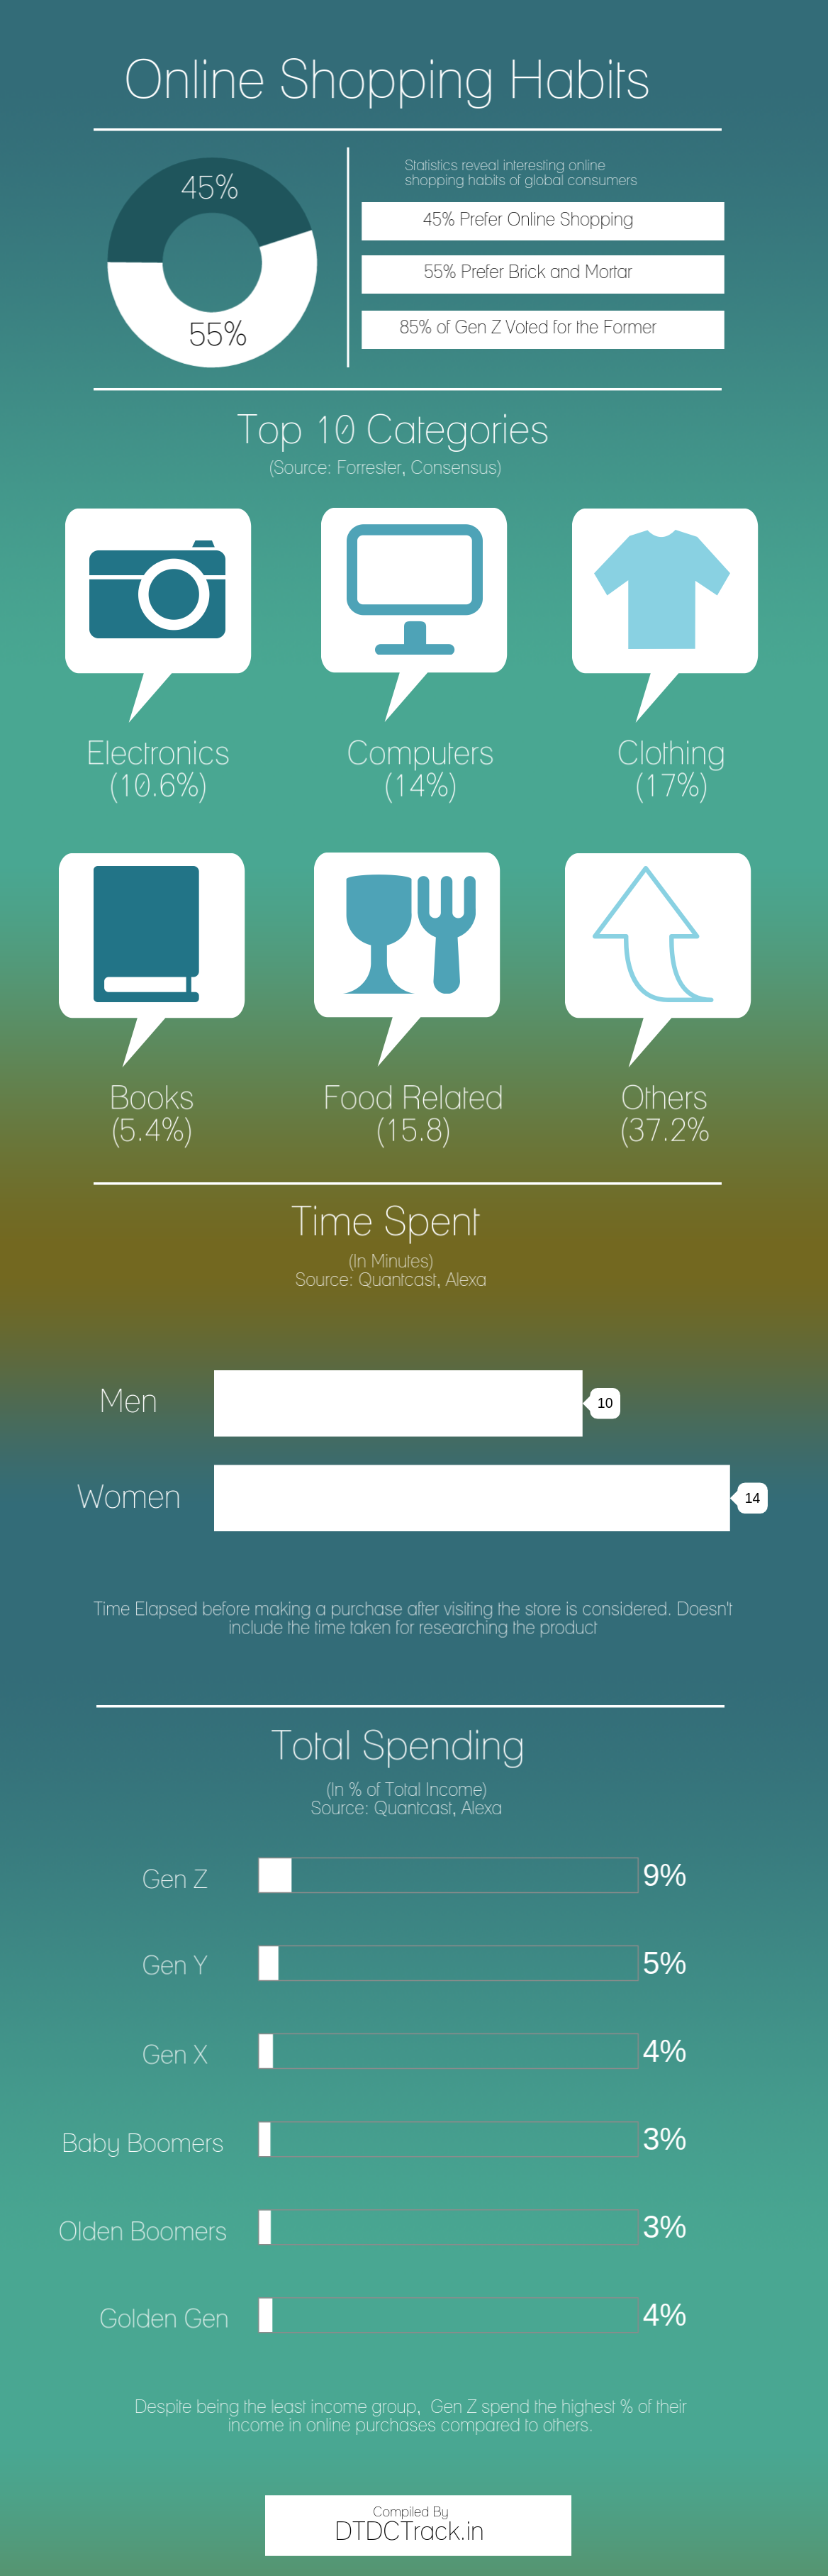 Online Shopping Habits [Infographic]